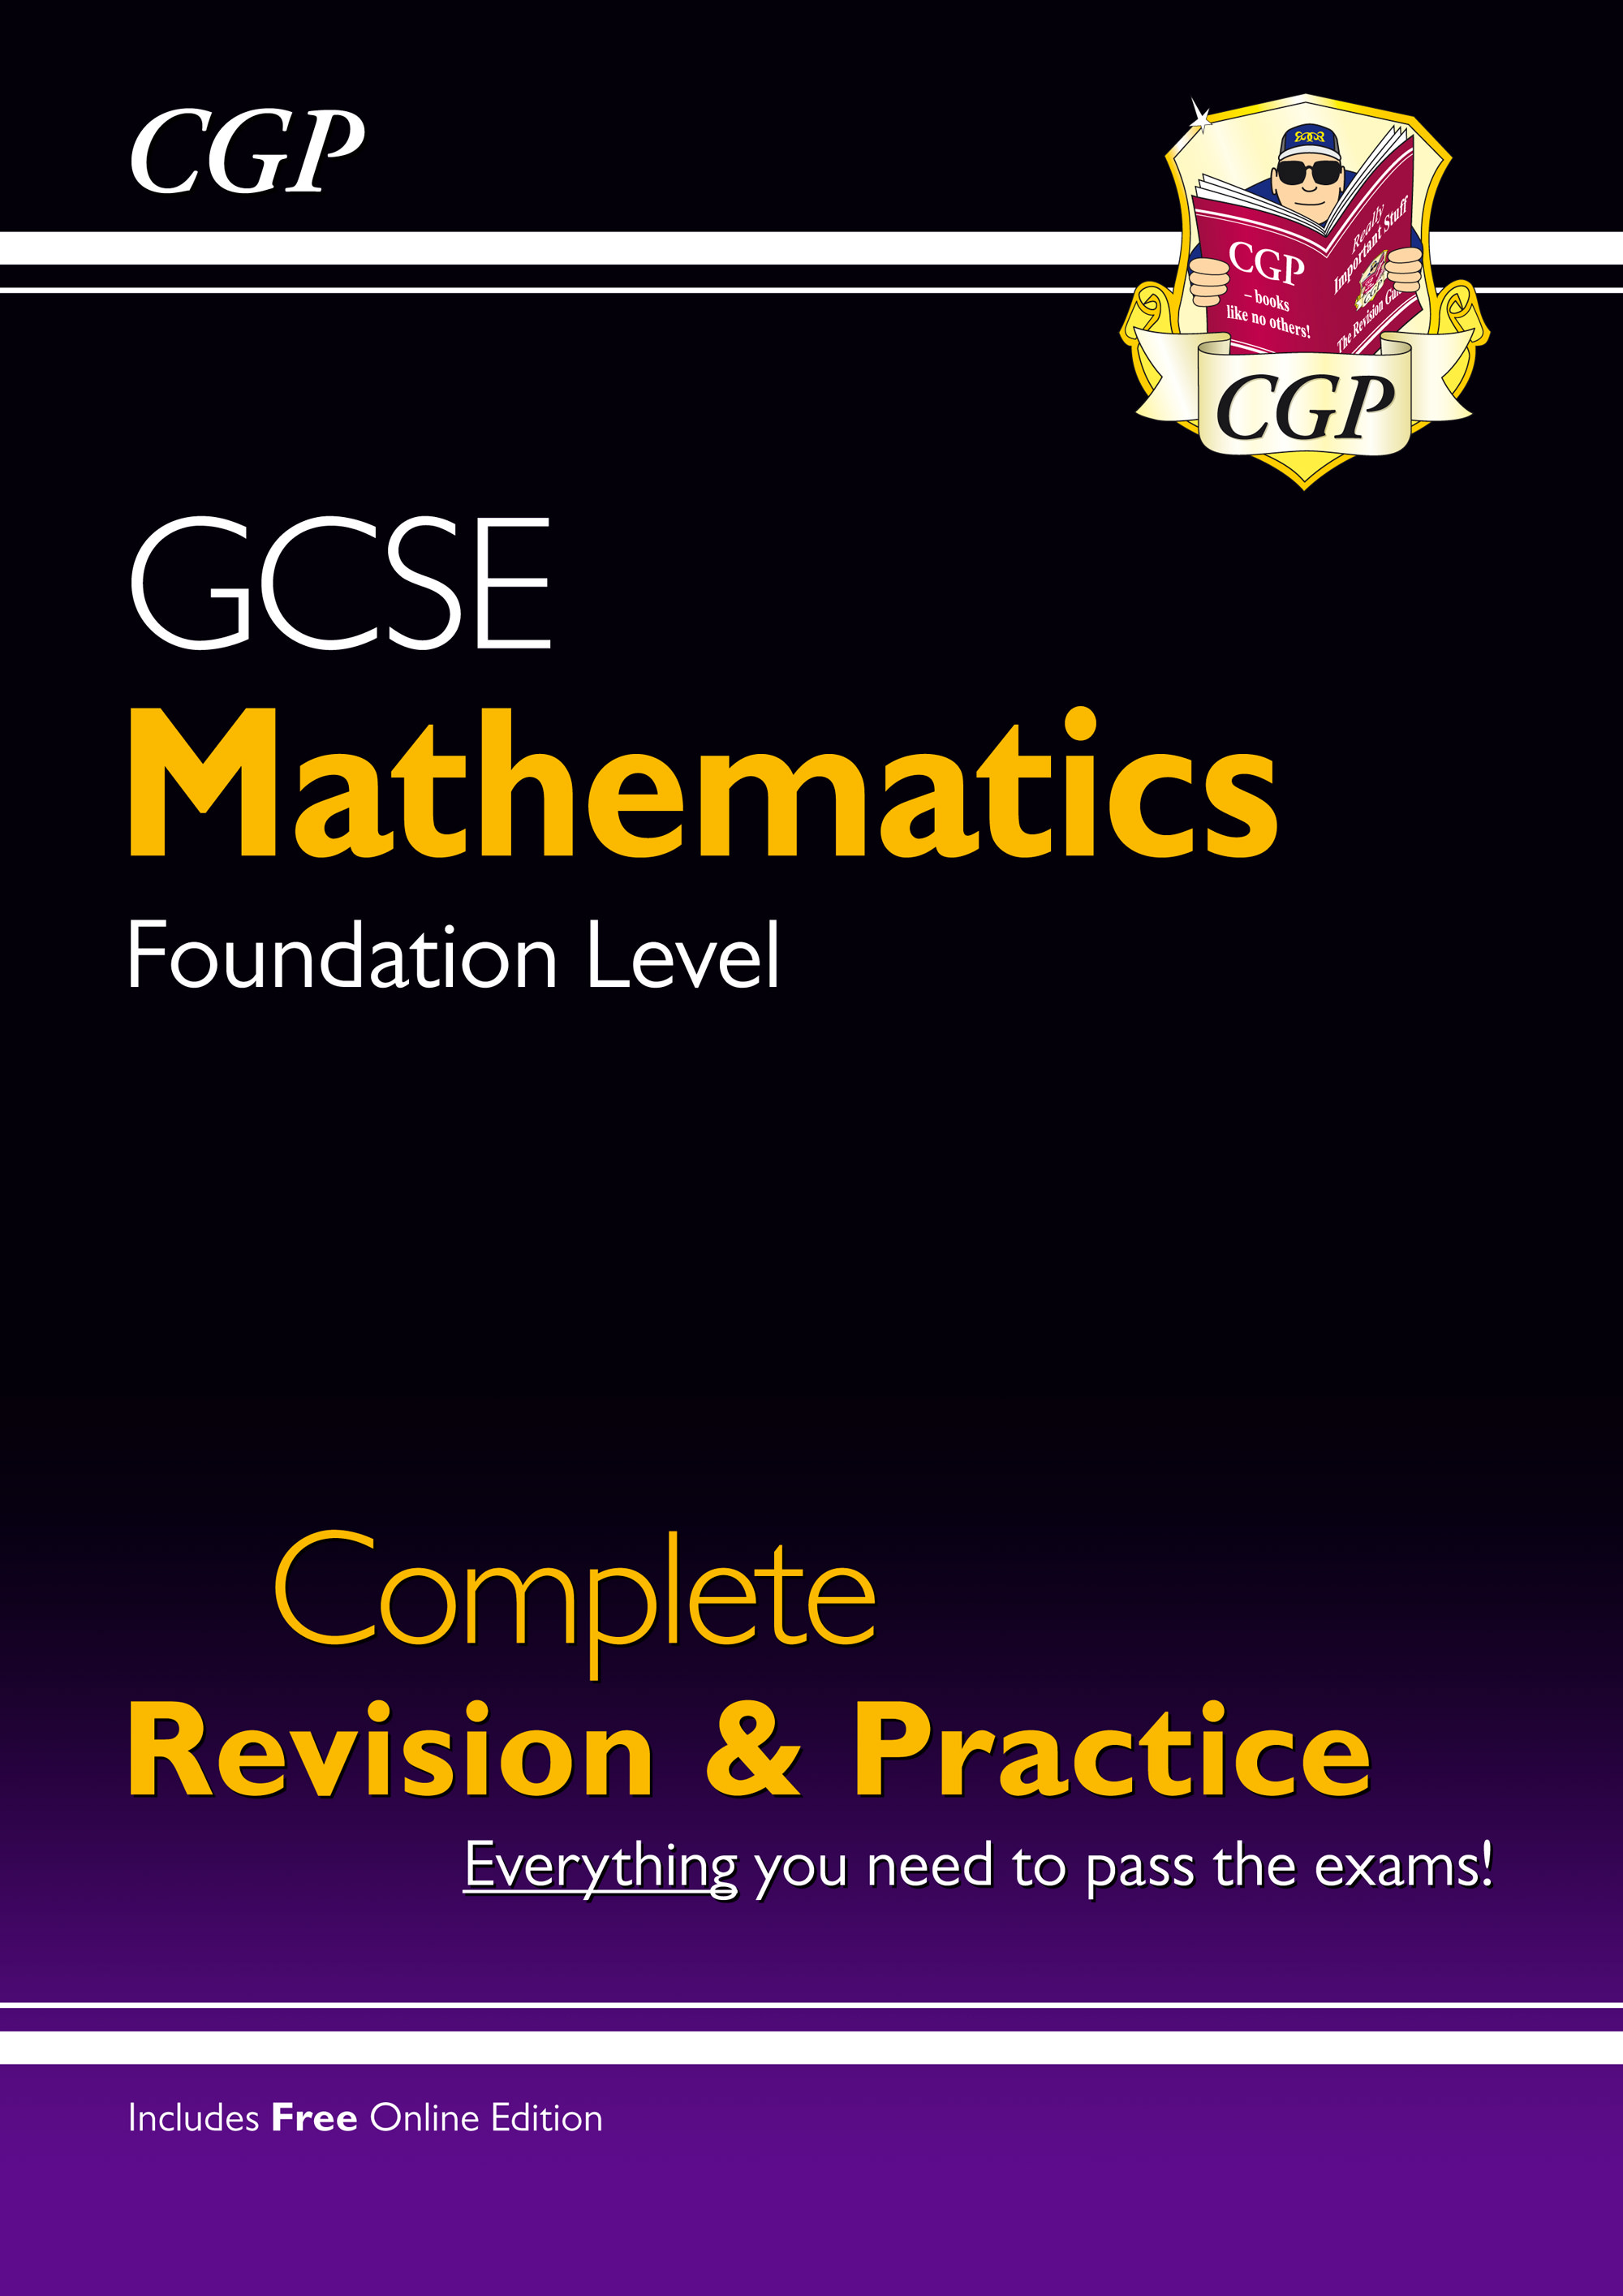 MFS47 - GCSE Maths Complete Revision & Practice: Foundation - Grade 9-1 Course (with Online Edition)